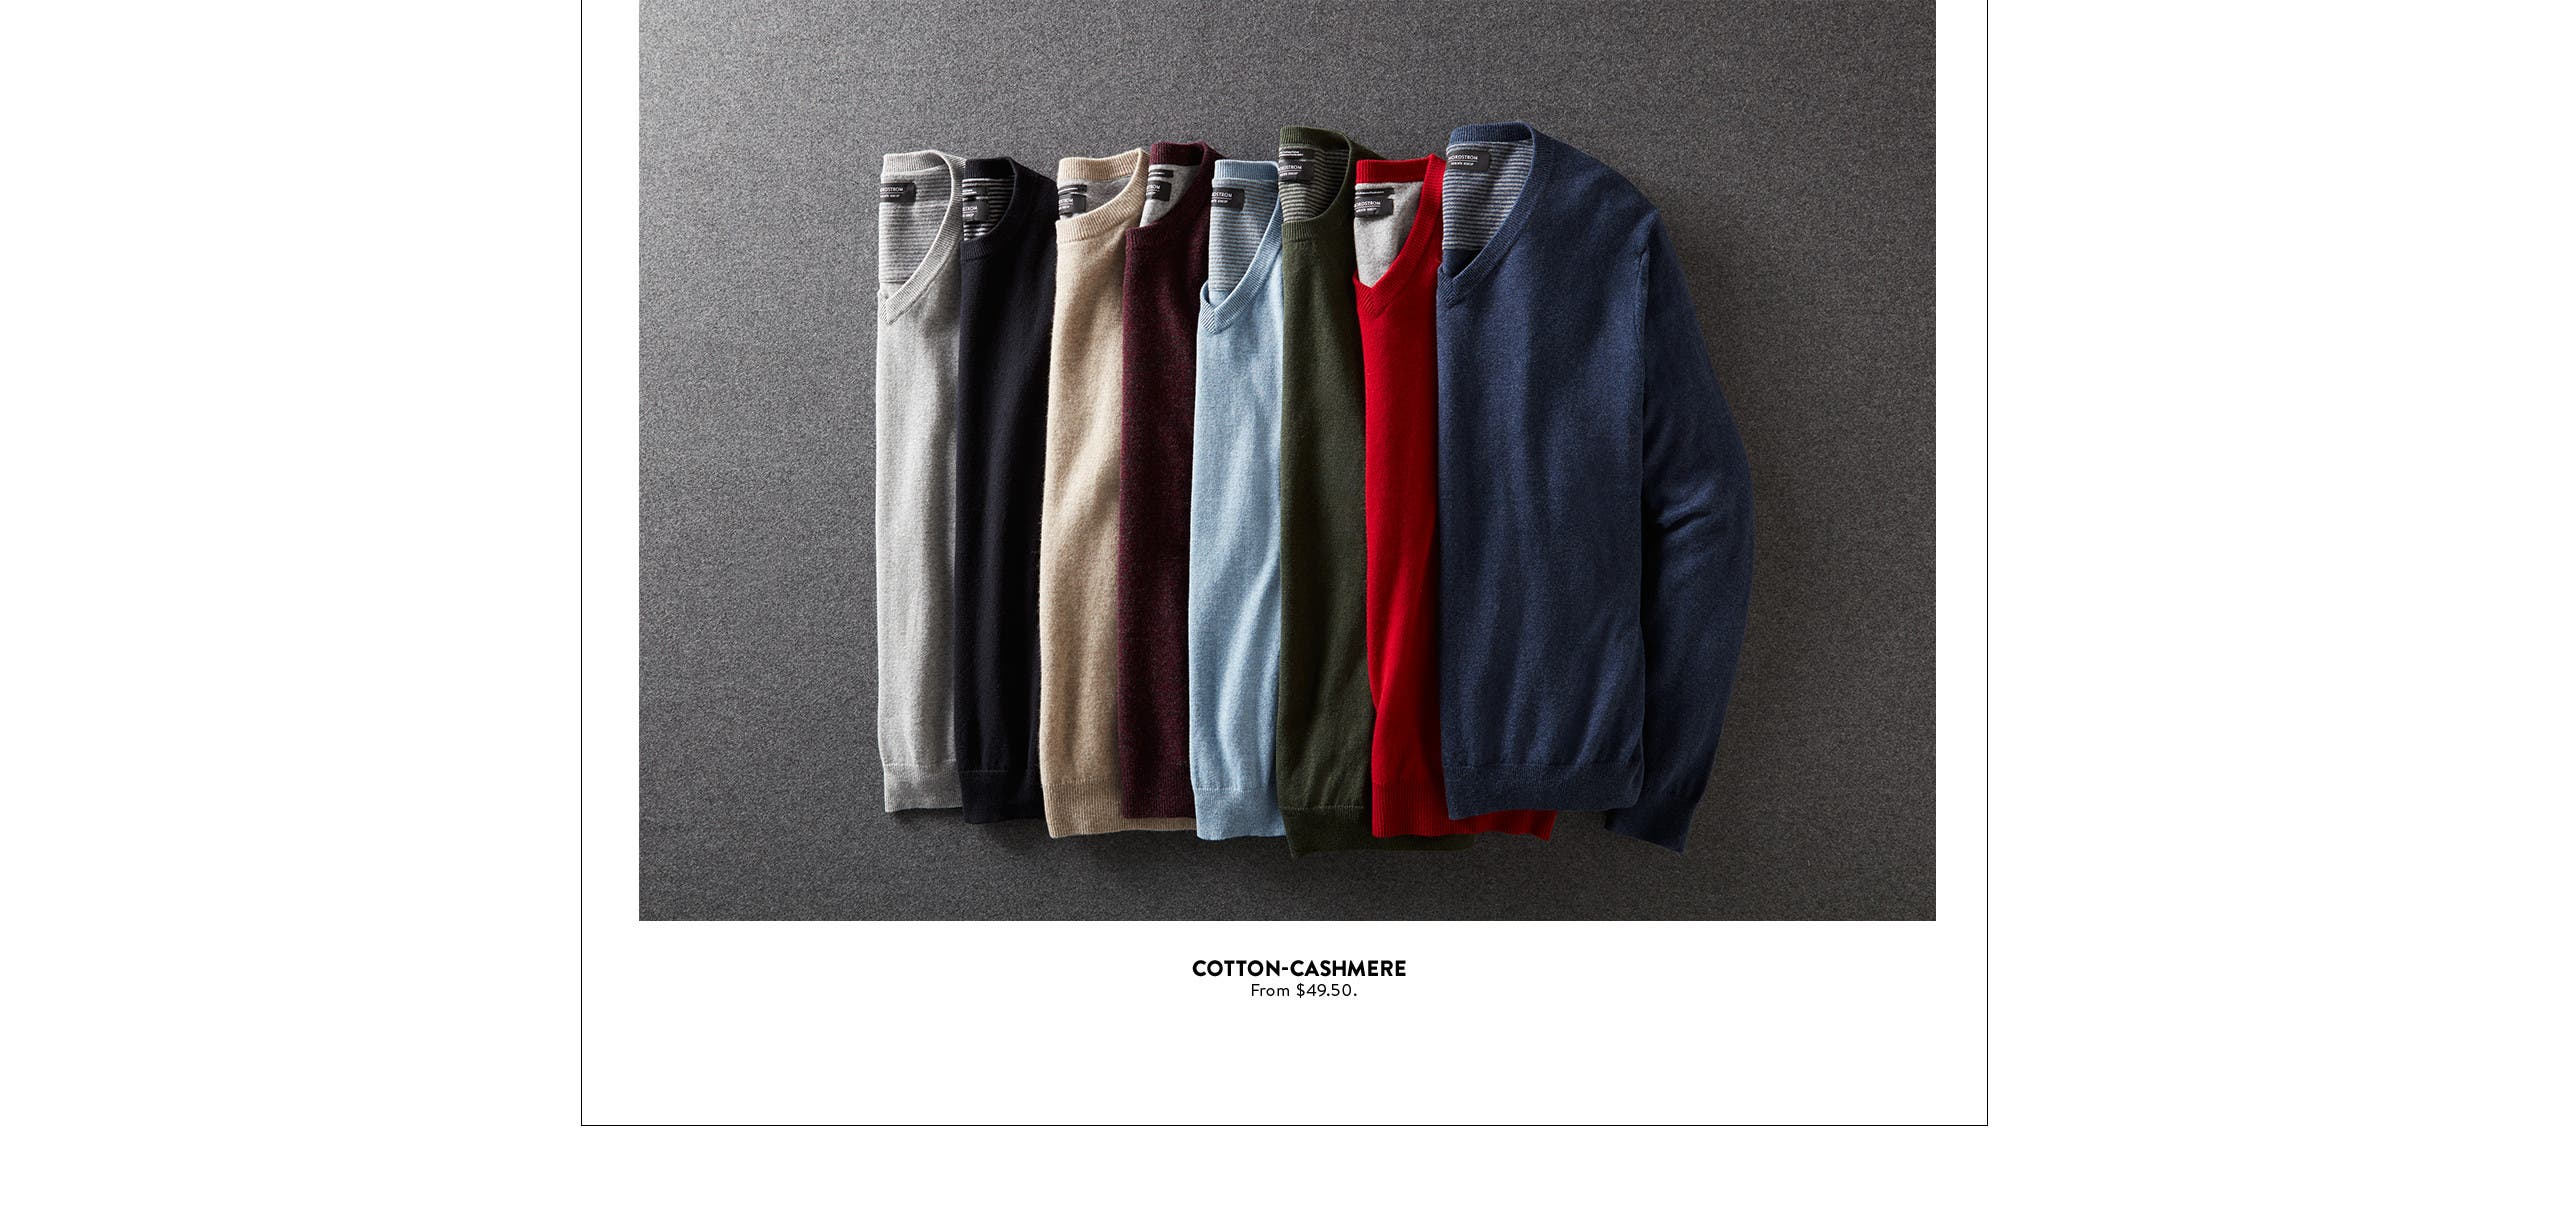 Cotton-cashmere sweaters from $49.50.